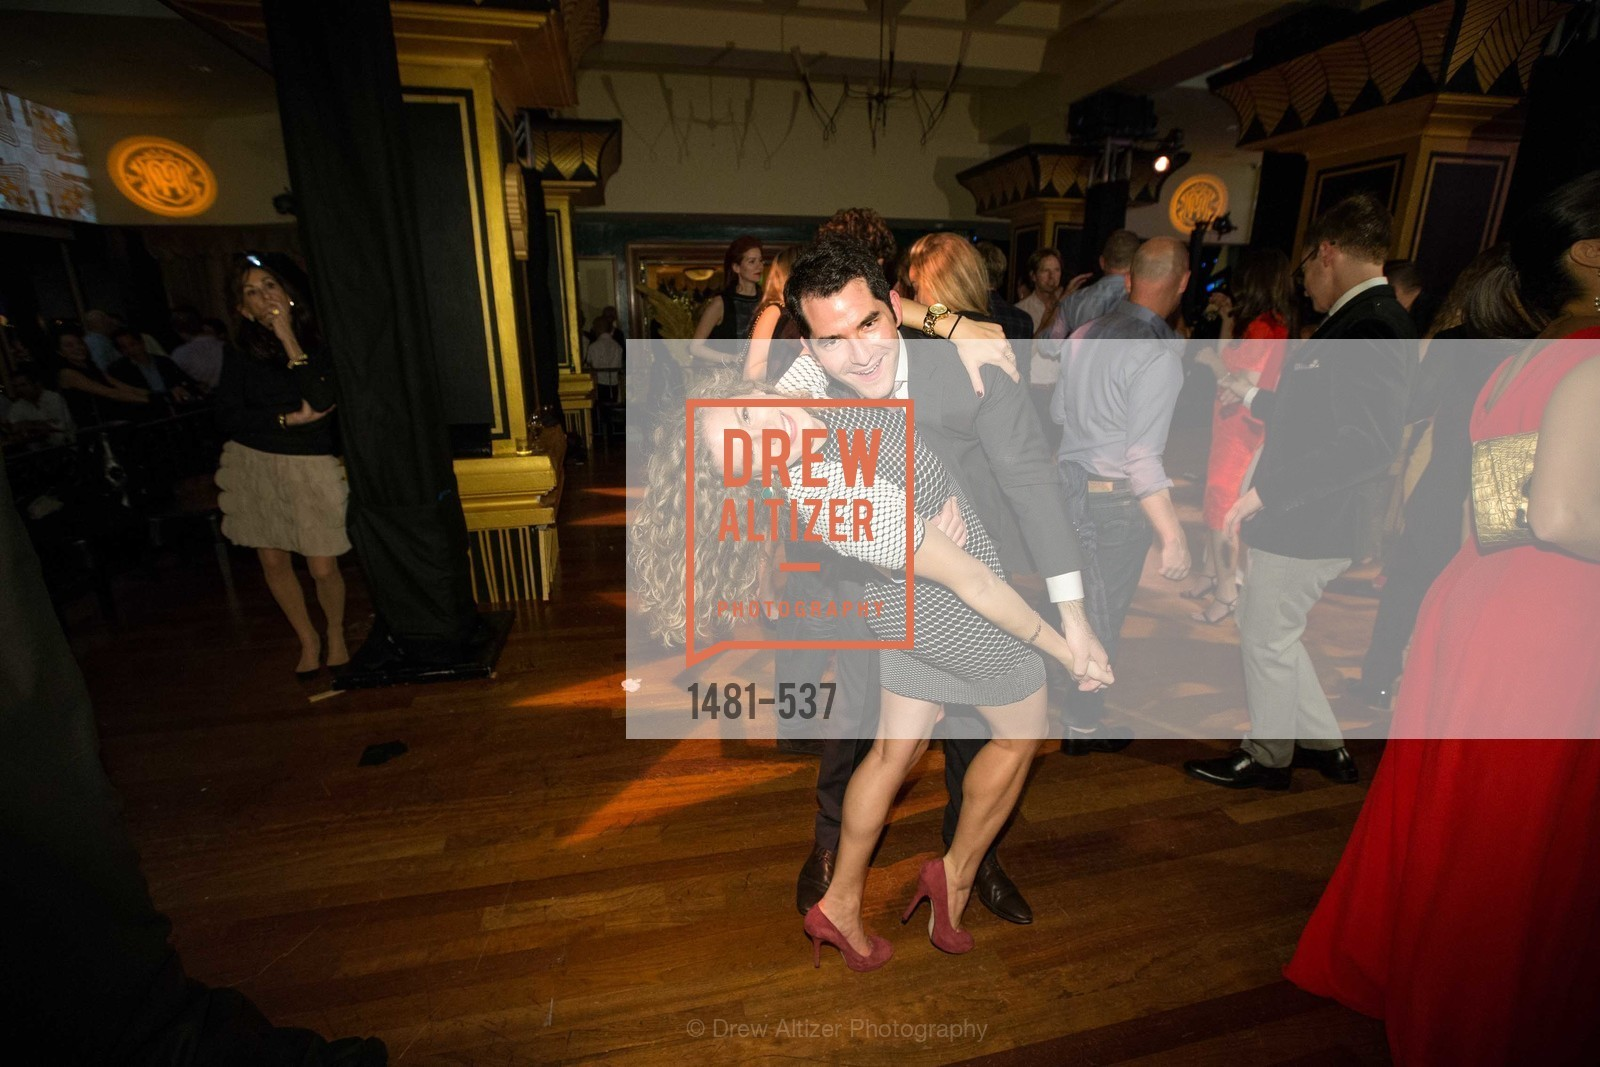 Adriana Volocsky, Sam Aperbach, TOP OF THE MARK'S 75TH Anniversary Party, US, November 6th, 2014,Drew Altizer, Drew Altizer Photography, full-service agency, private events, San Francisco photographer, photographer california